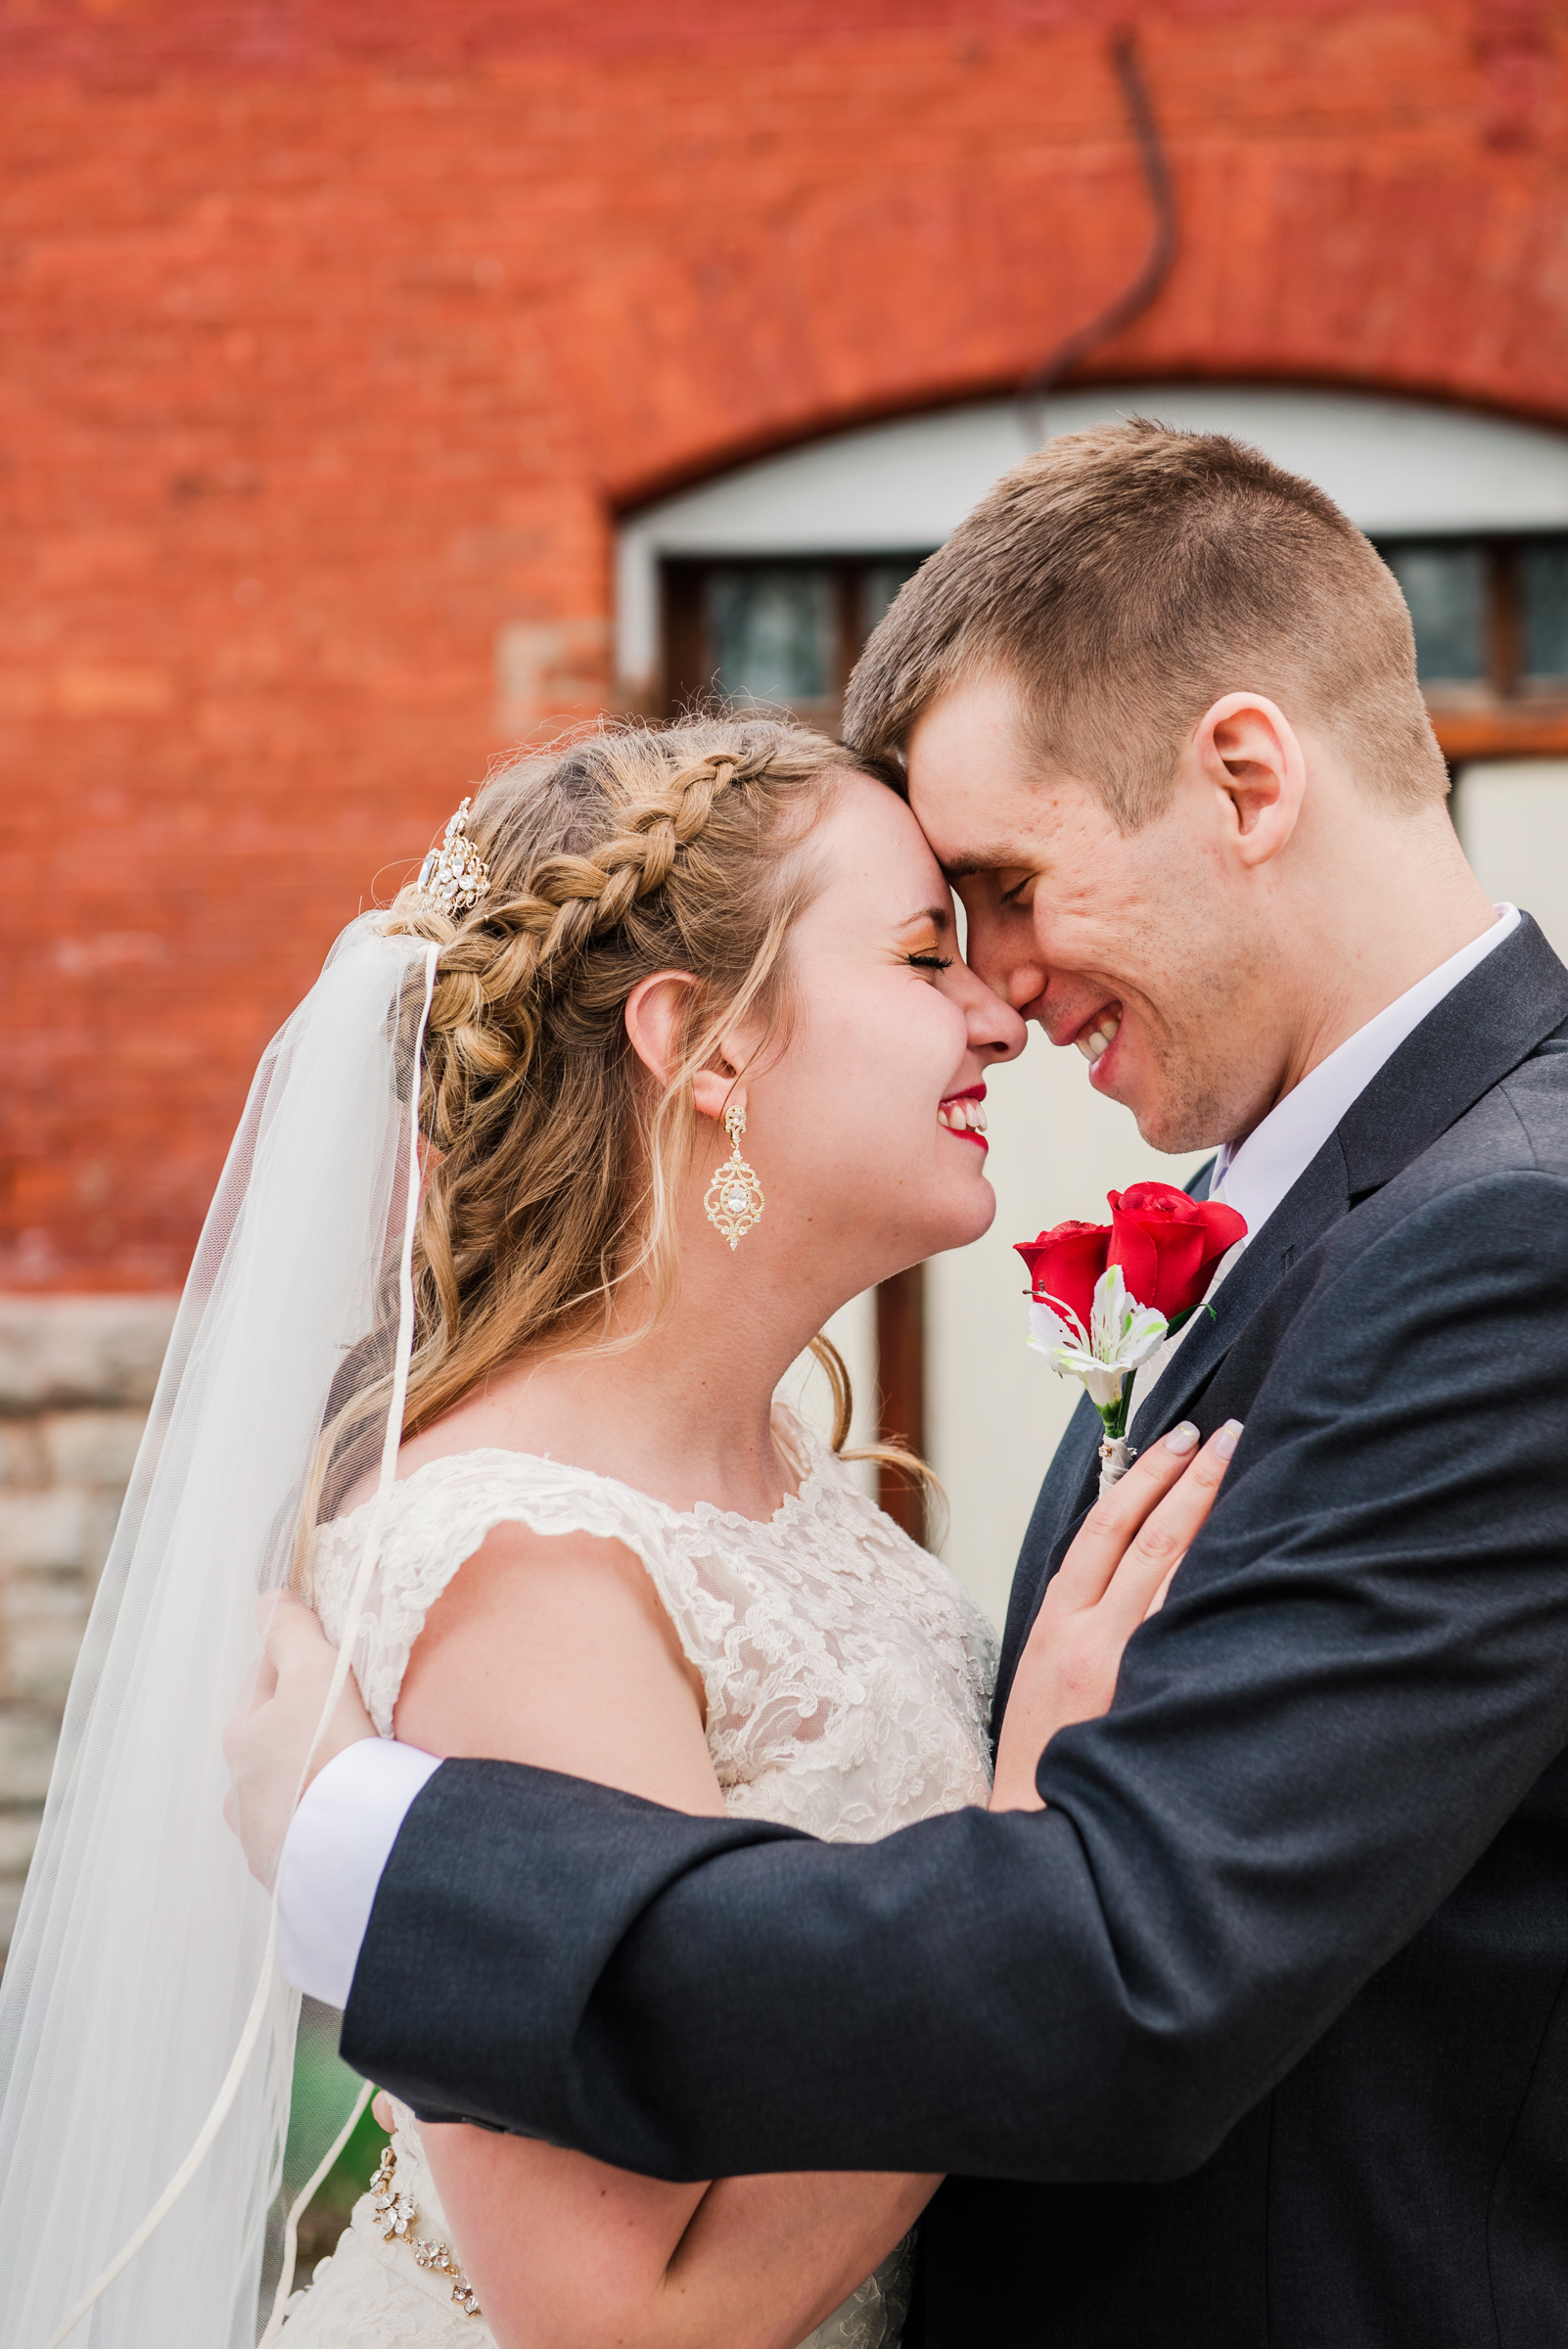 JILL_STUDIO_Wedding_JILL_STUDIO_Rochester_NY_Photographer_2-DSC_7222.jpg